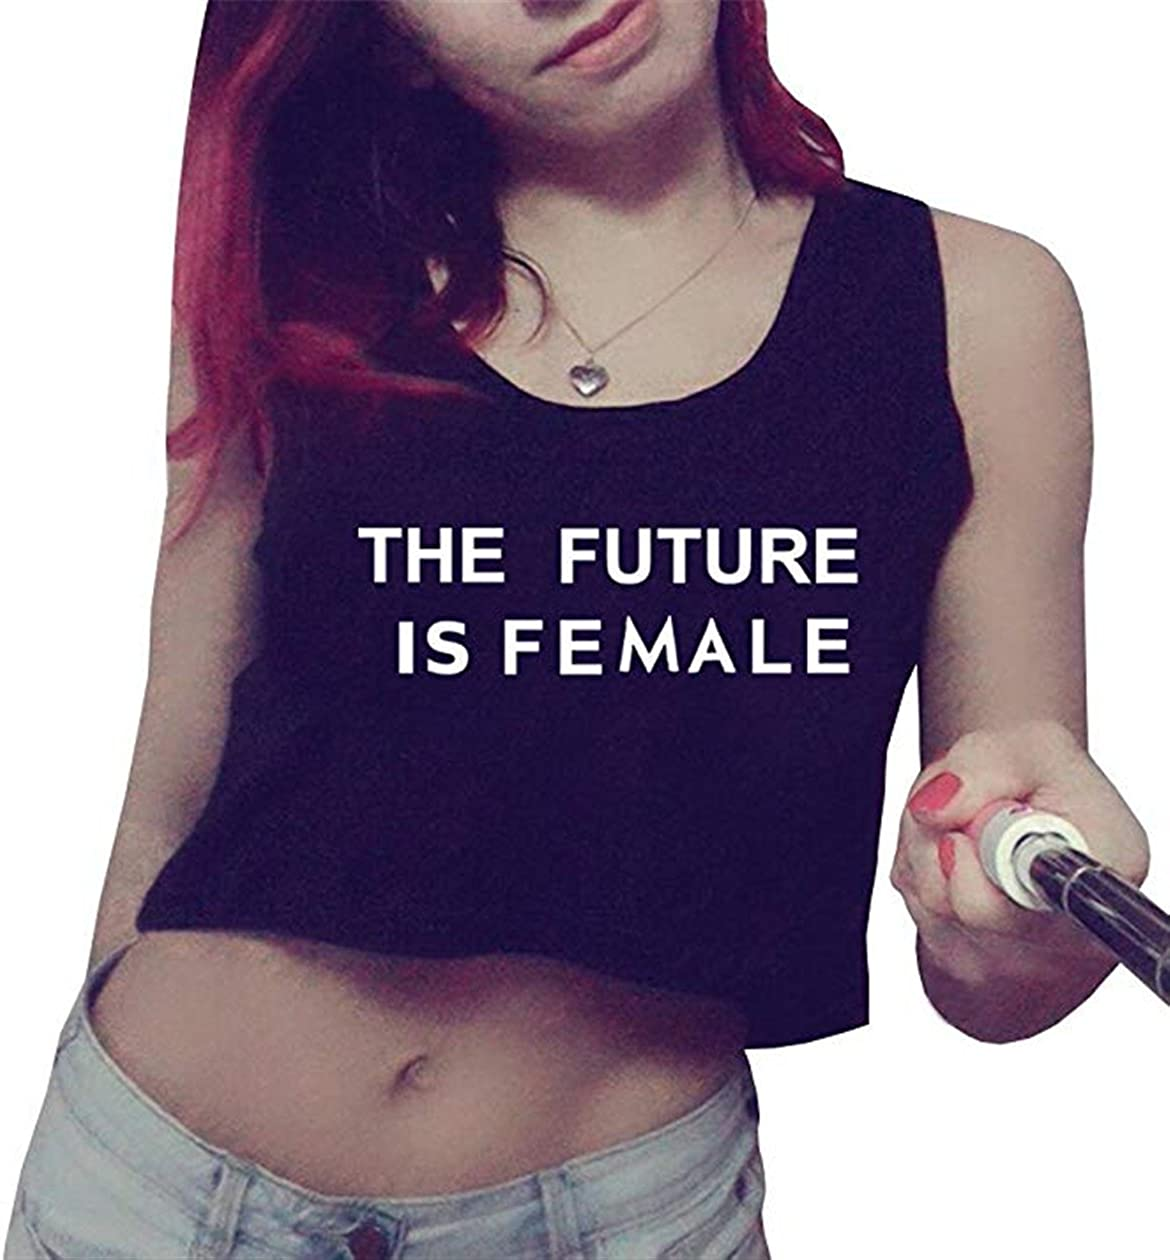 The Future is Female Women Graphic Crops Top Cute Gym Tanks